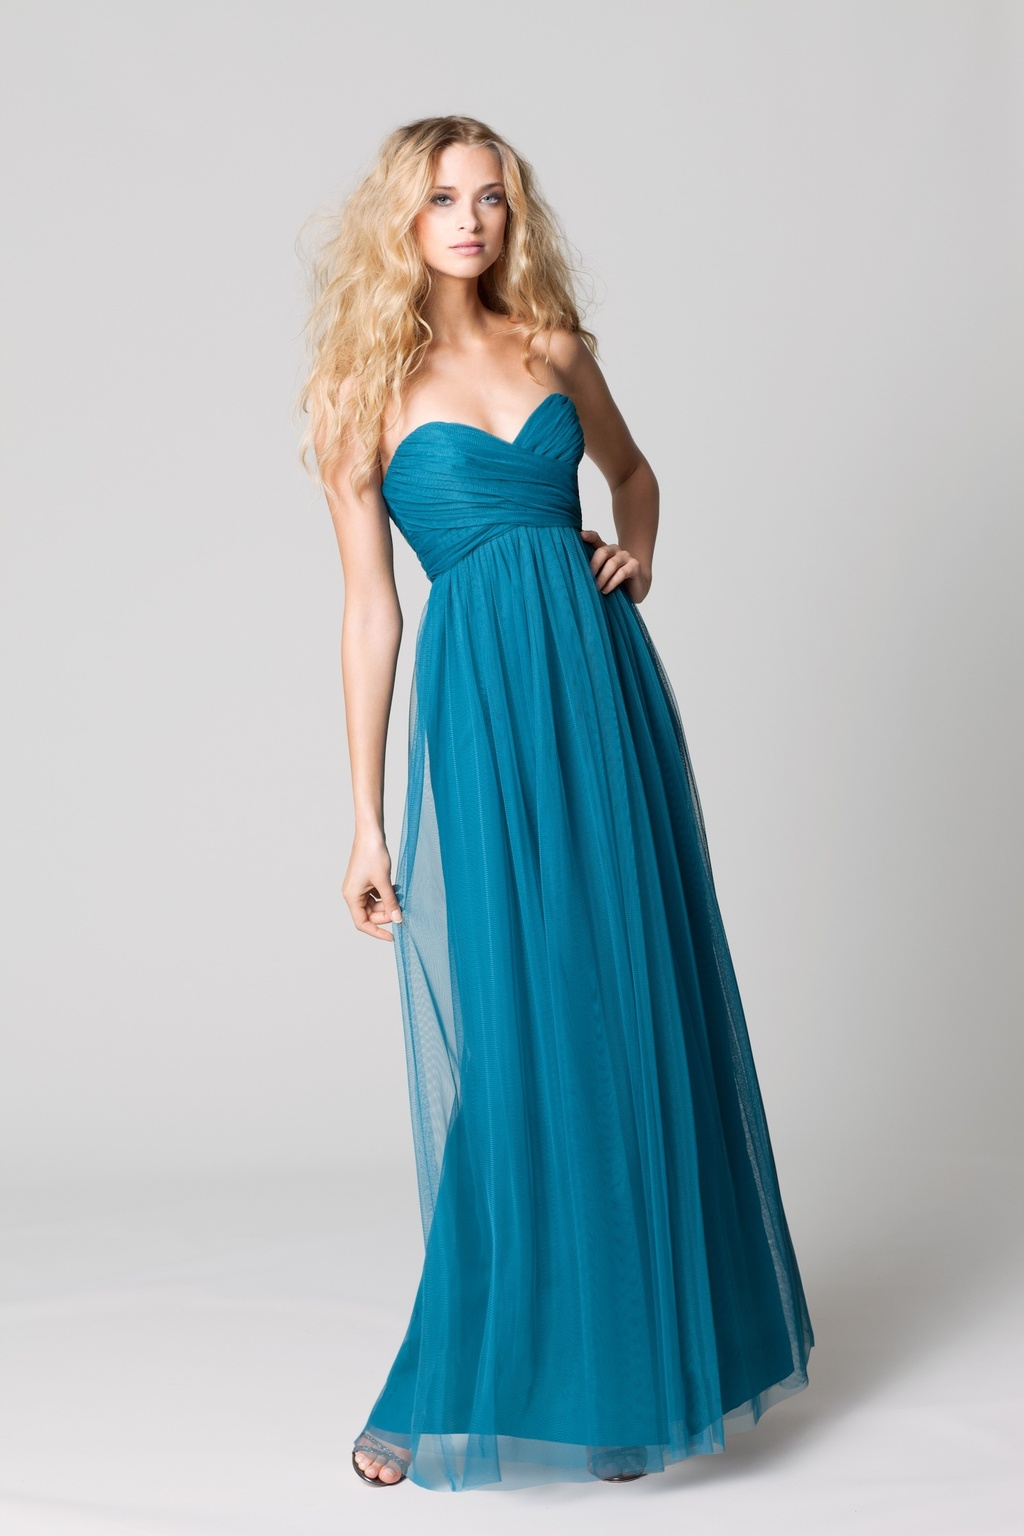 Affordable-bridesmaids-dresses-fall-2012-wtoo-by-watters-bridal-party-teal-long.full